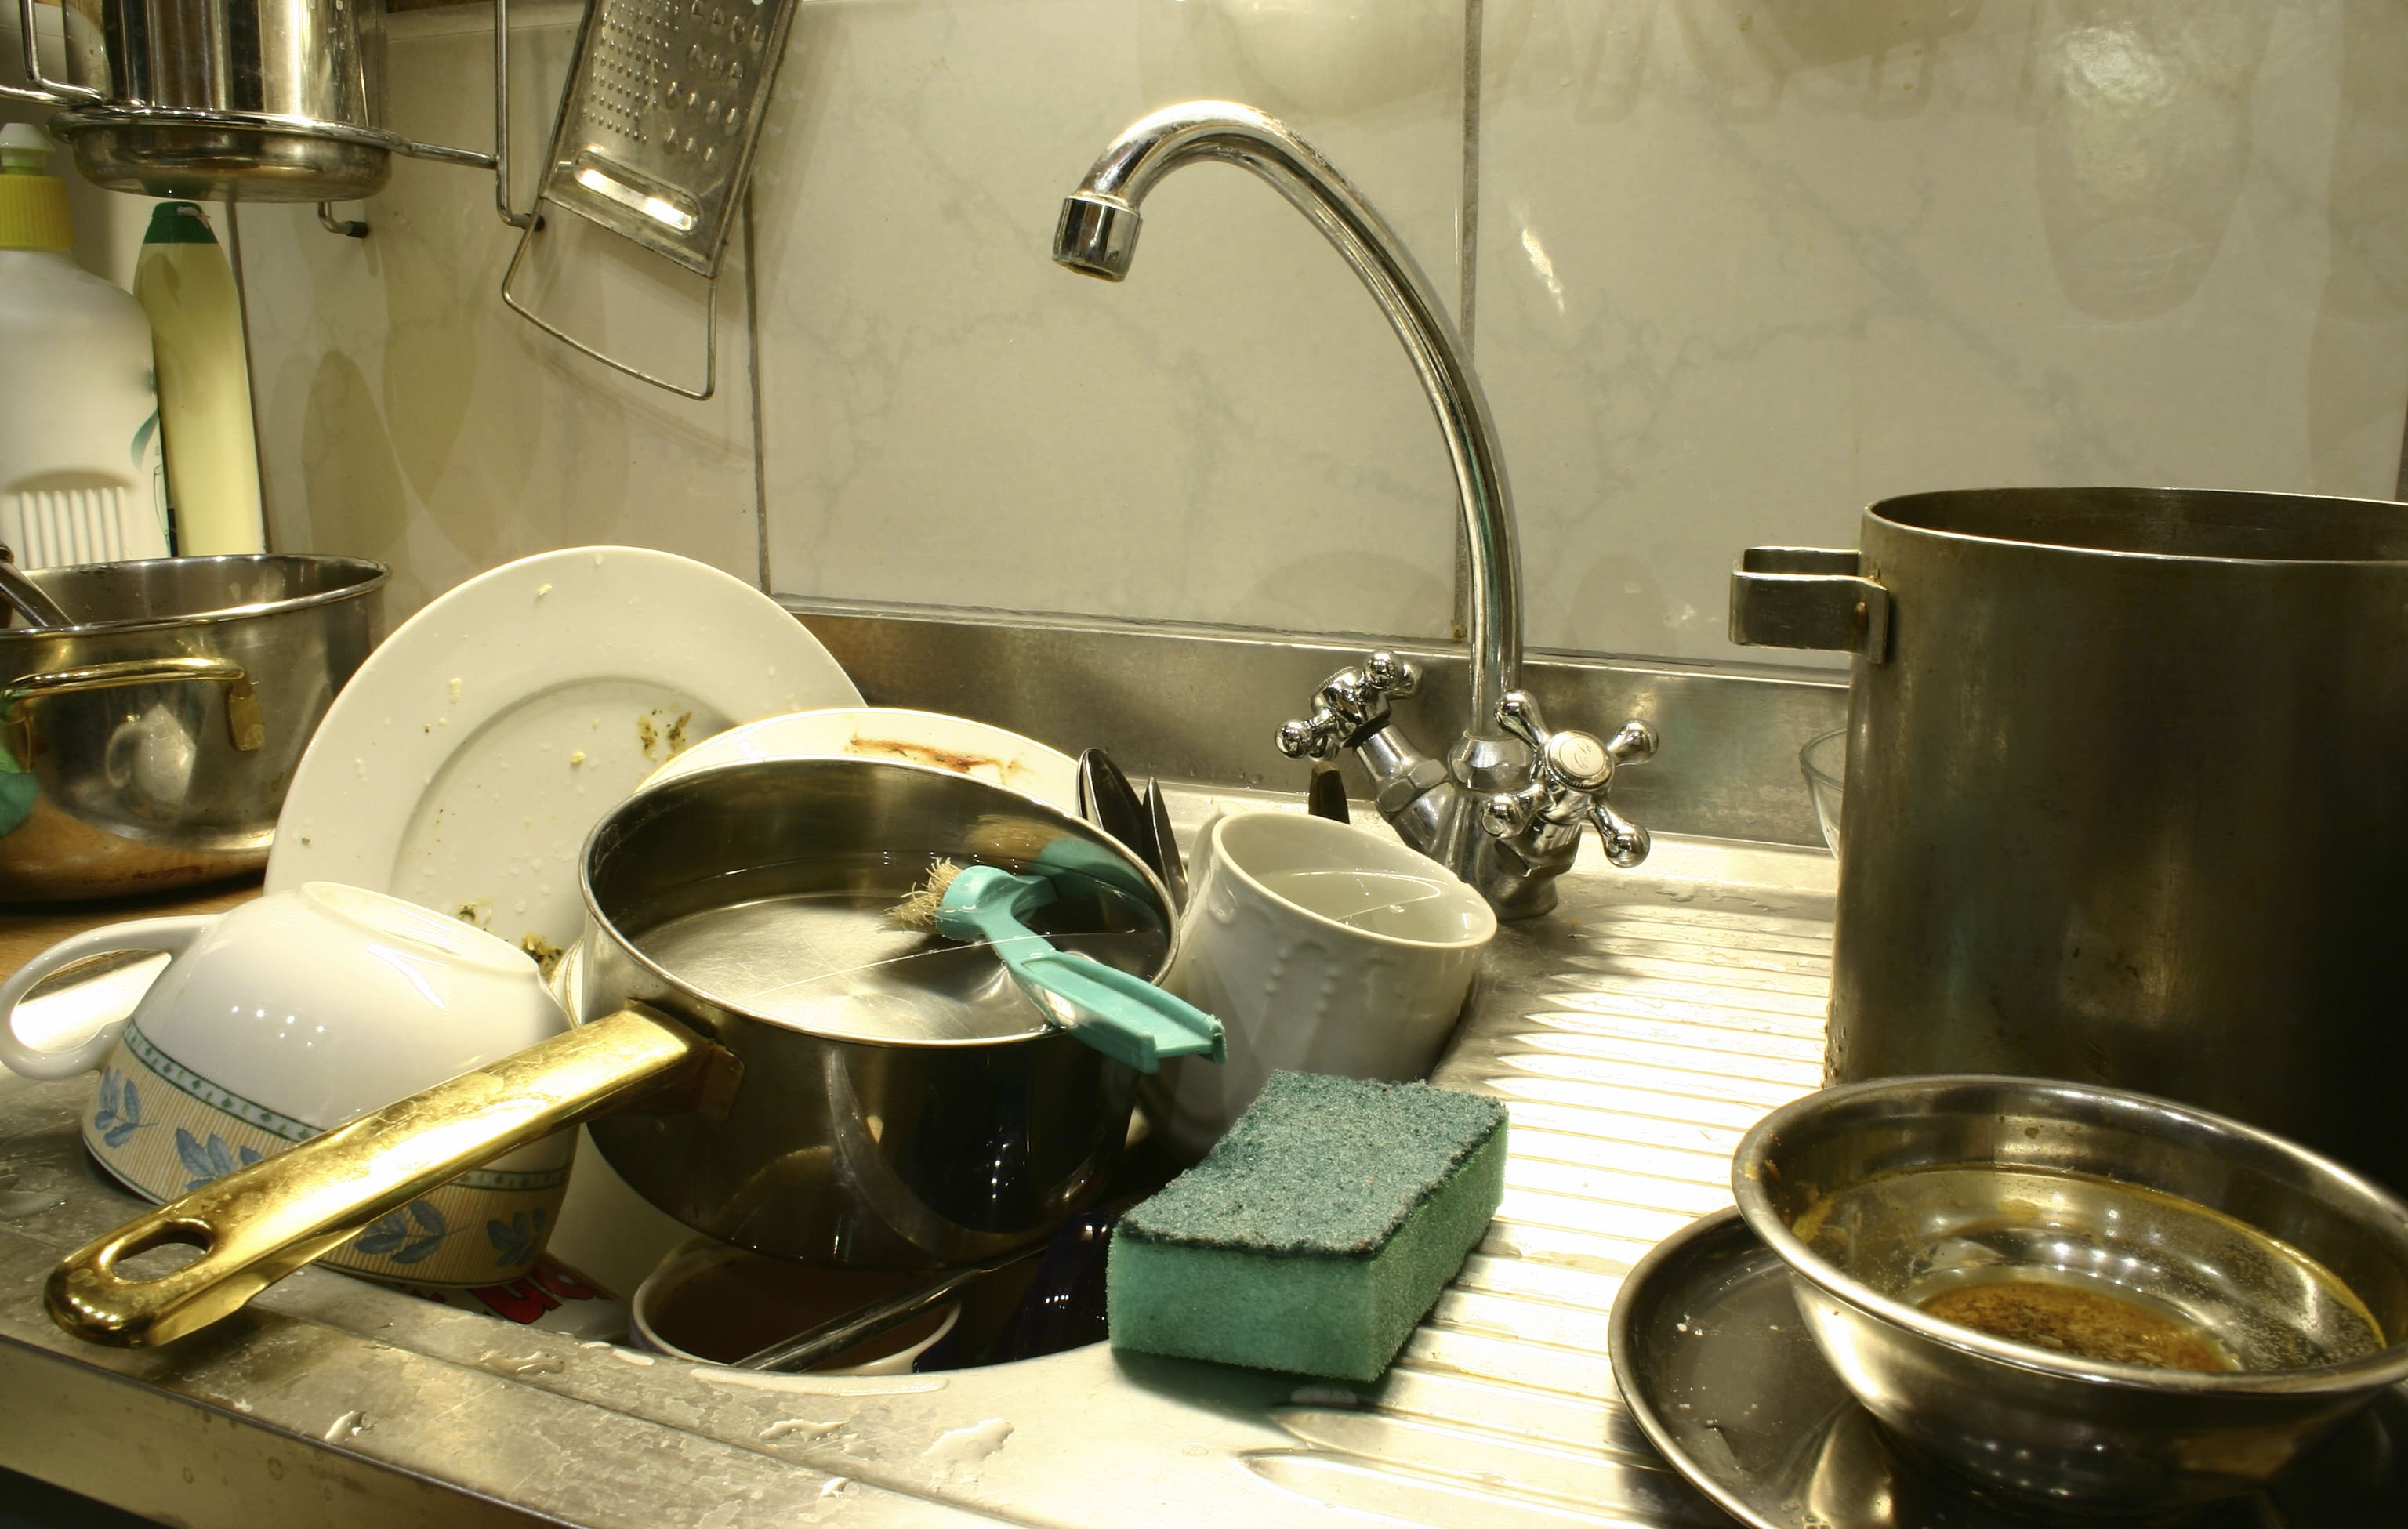 Lots of dirty dishes ~ what now atlanta